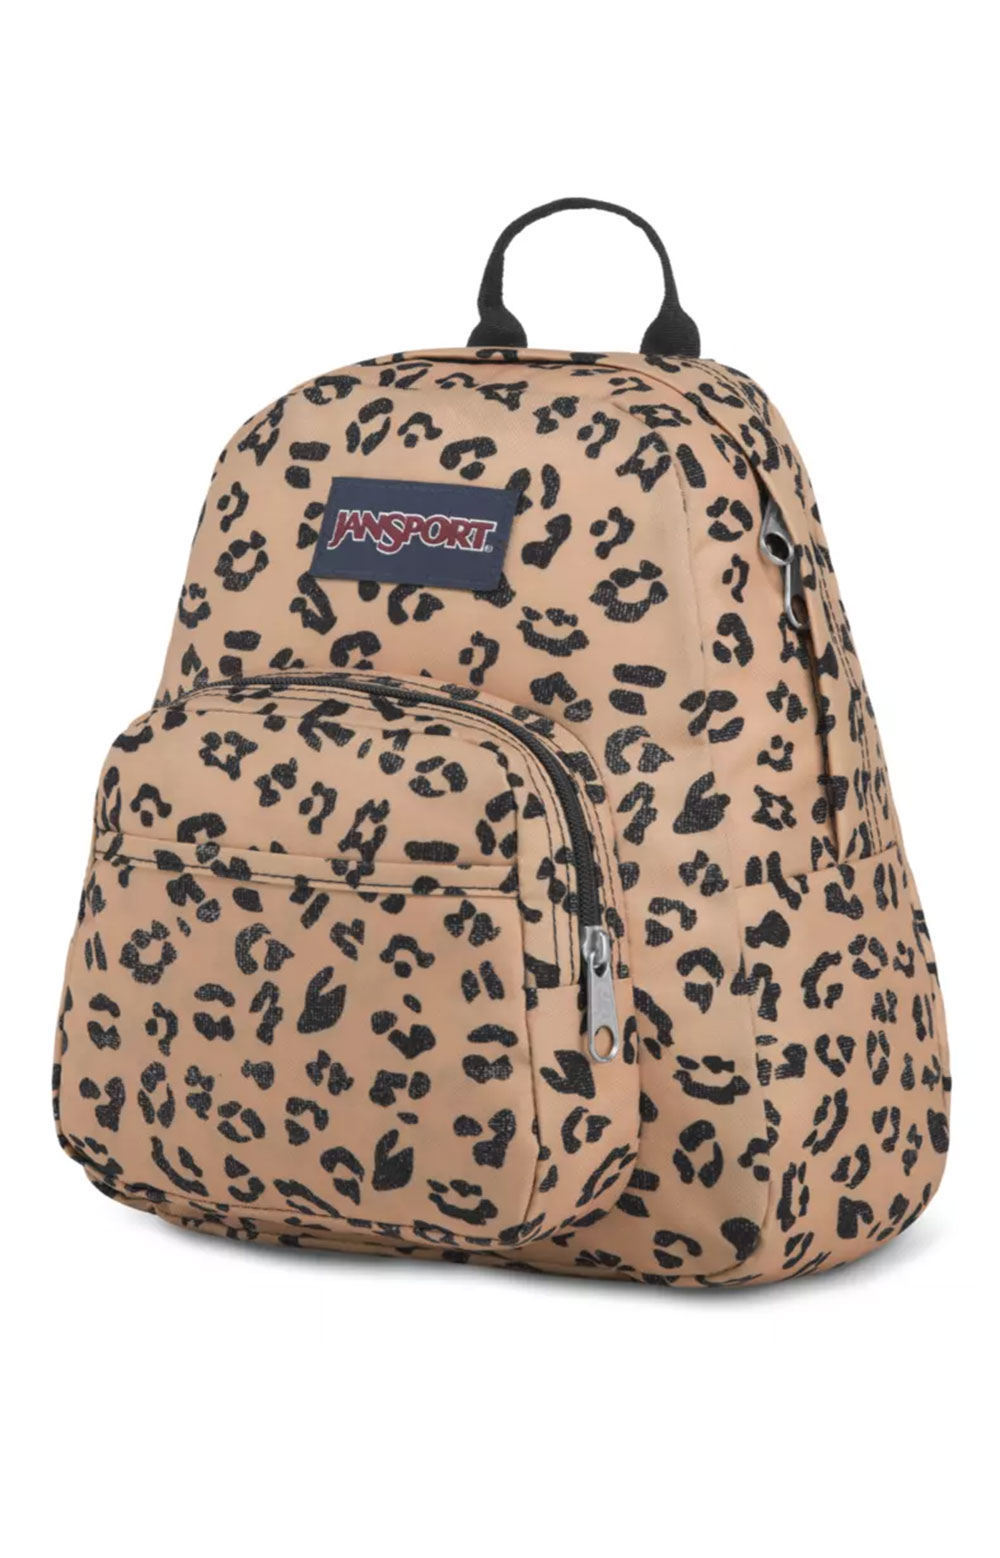 Half Pint Mini Backpack - Show Your Spots 3